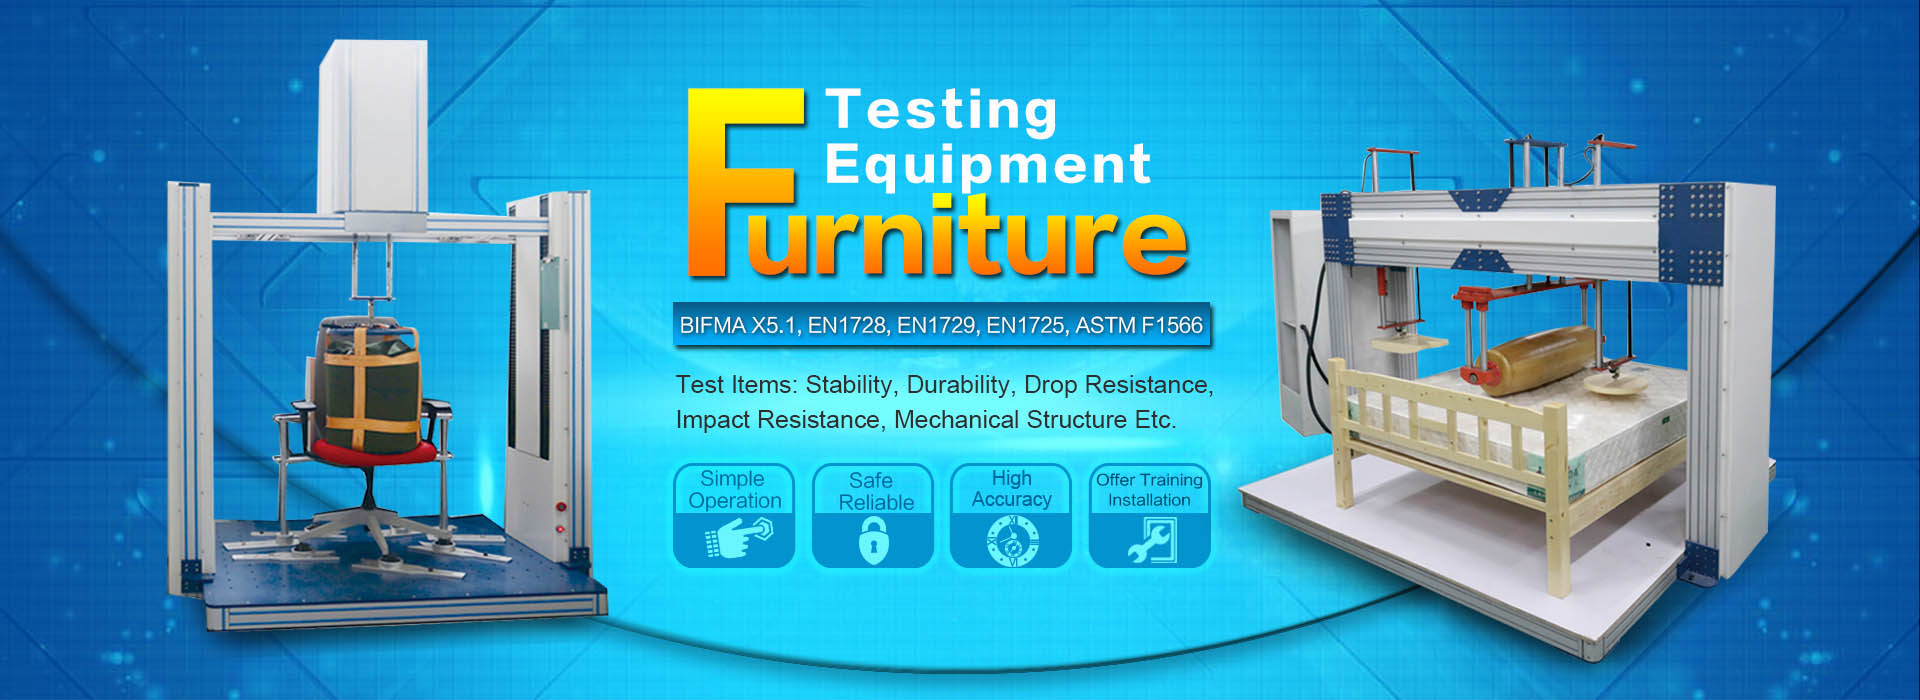 furniture testing equipment